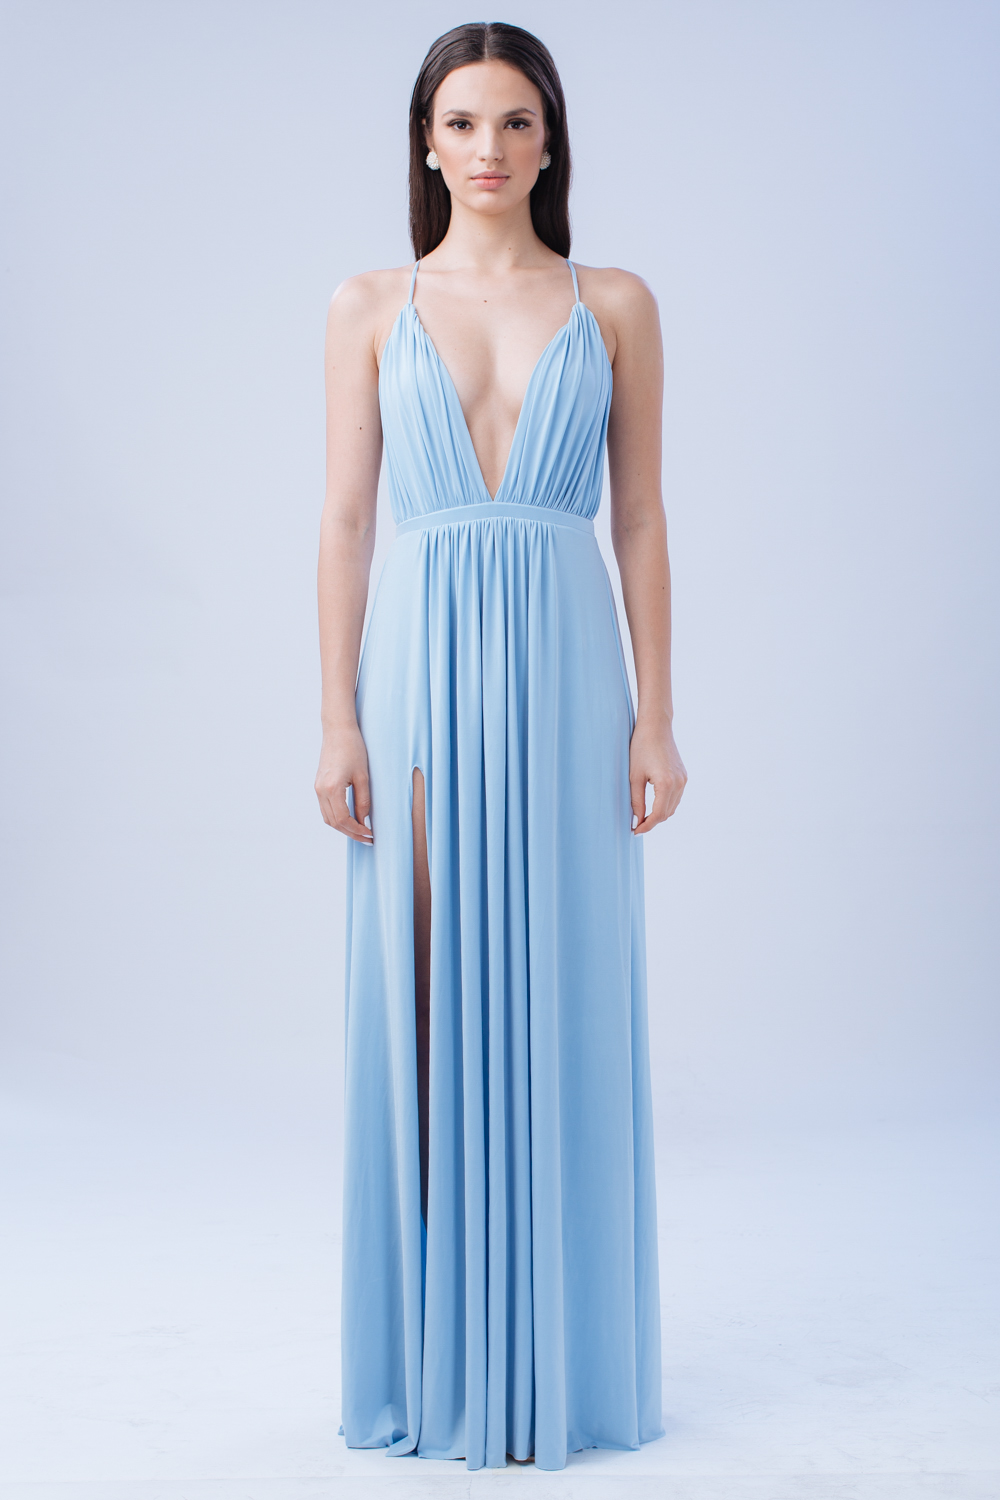 ZOO – Fashion Online | TO BE ADORED Plunge Front Crossed Back Maxi ...